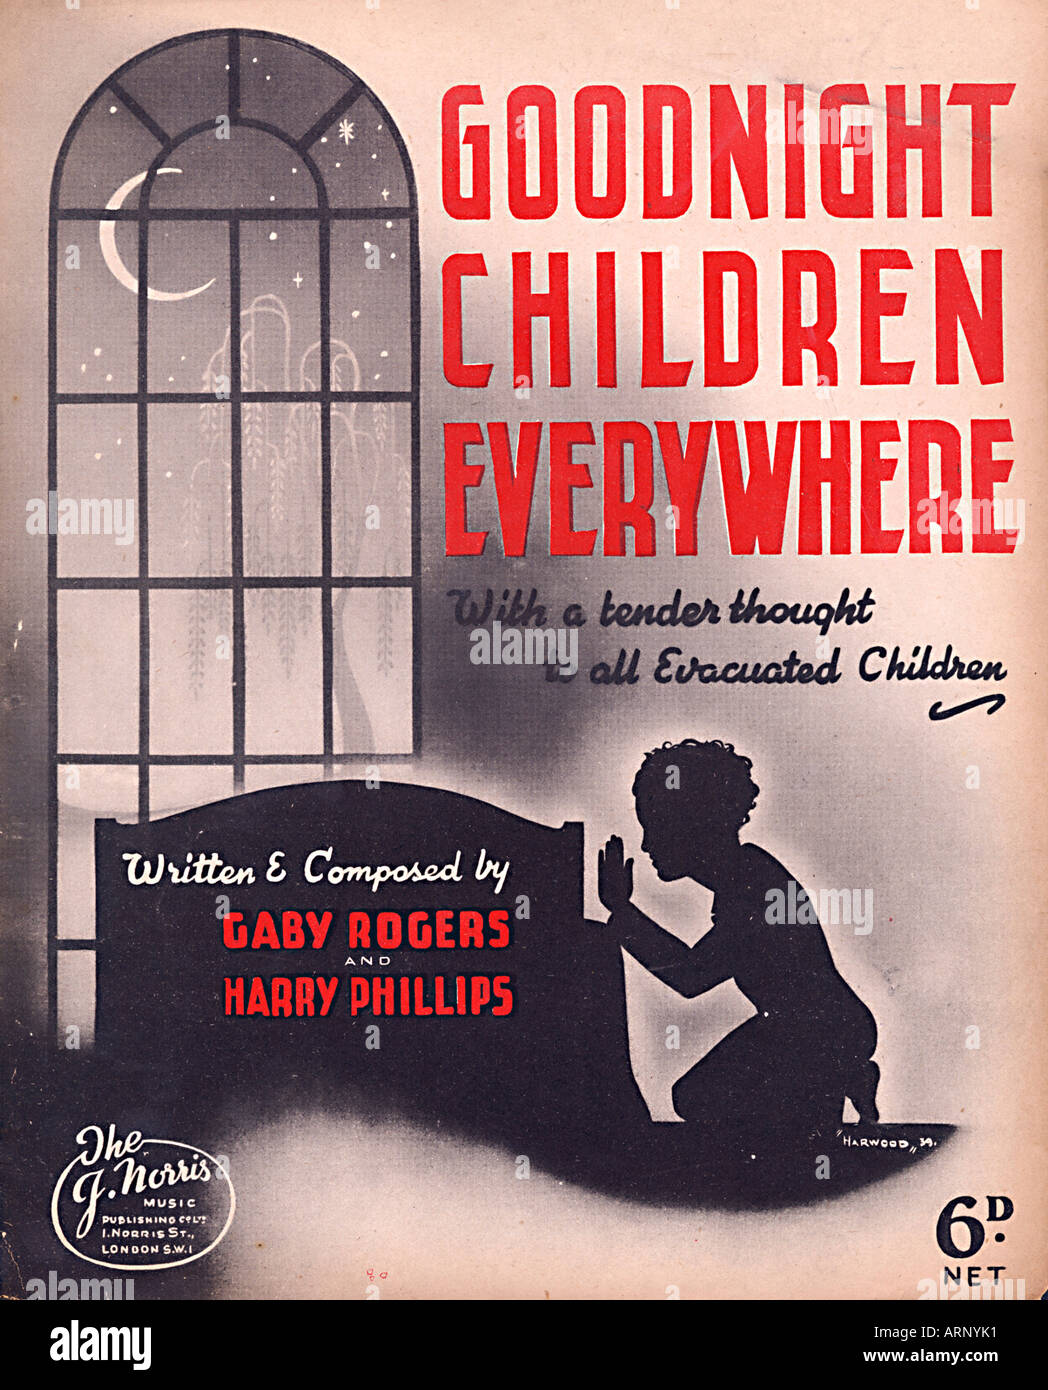 Goodnight Children Everywhere Wartime English music sheet cover with a tender thought to all evacuated children - Stock Image